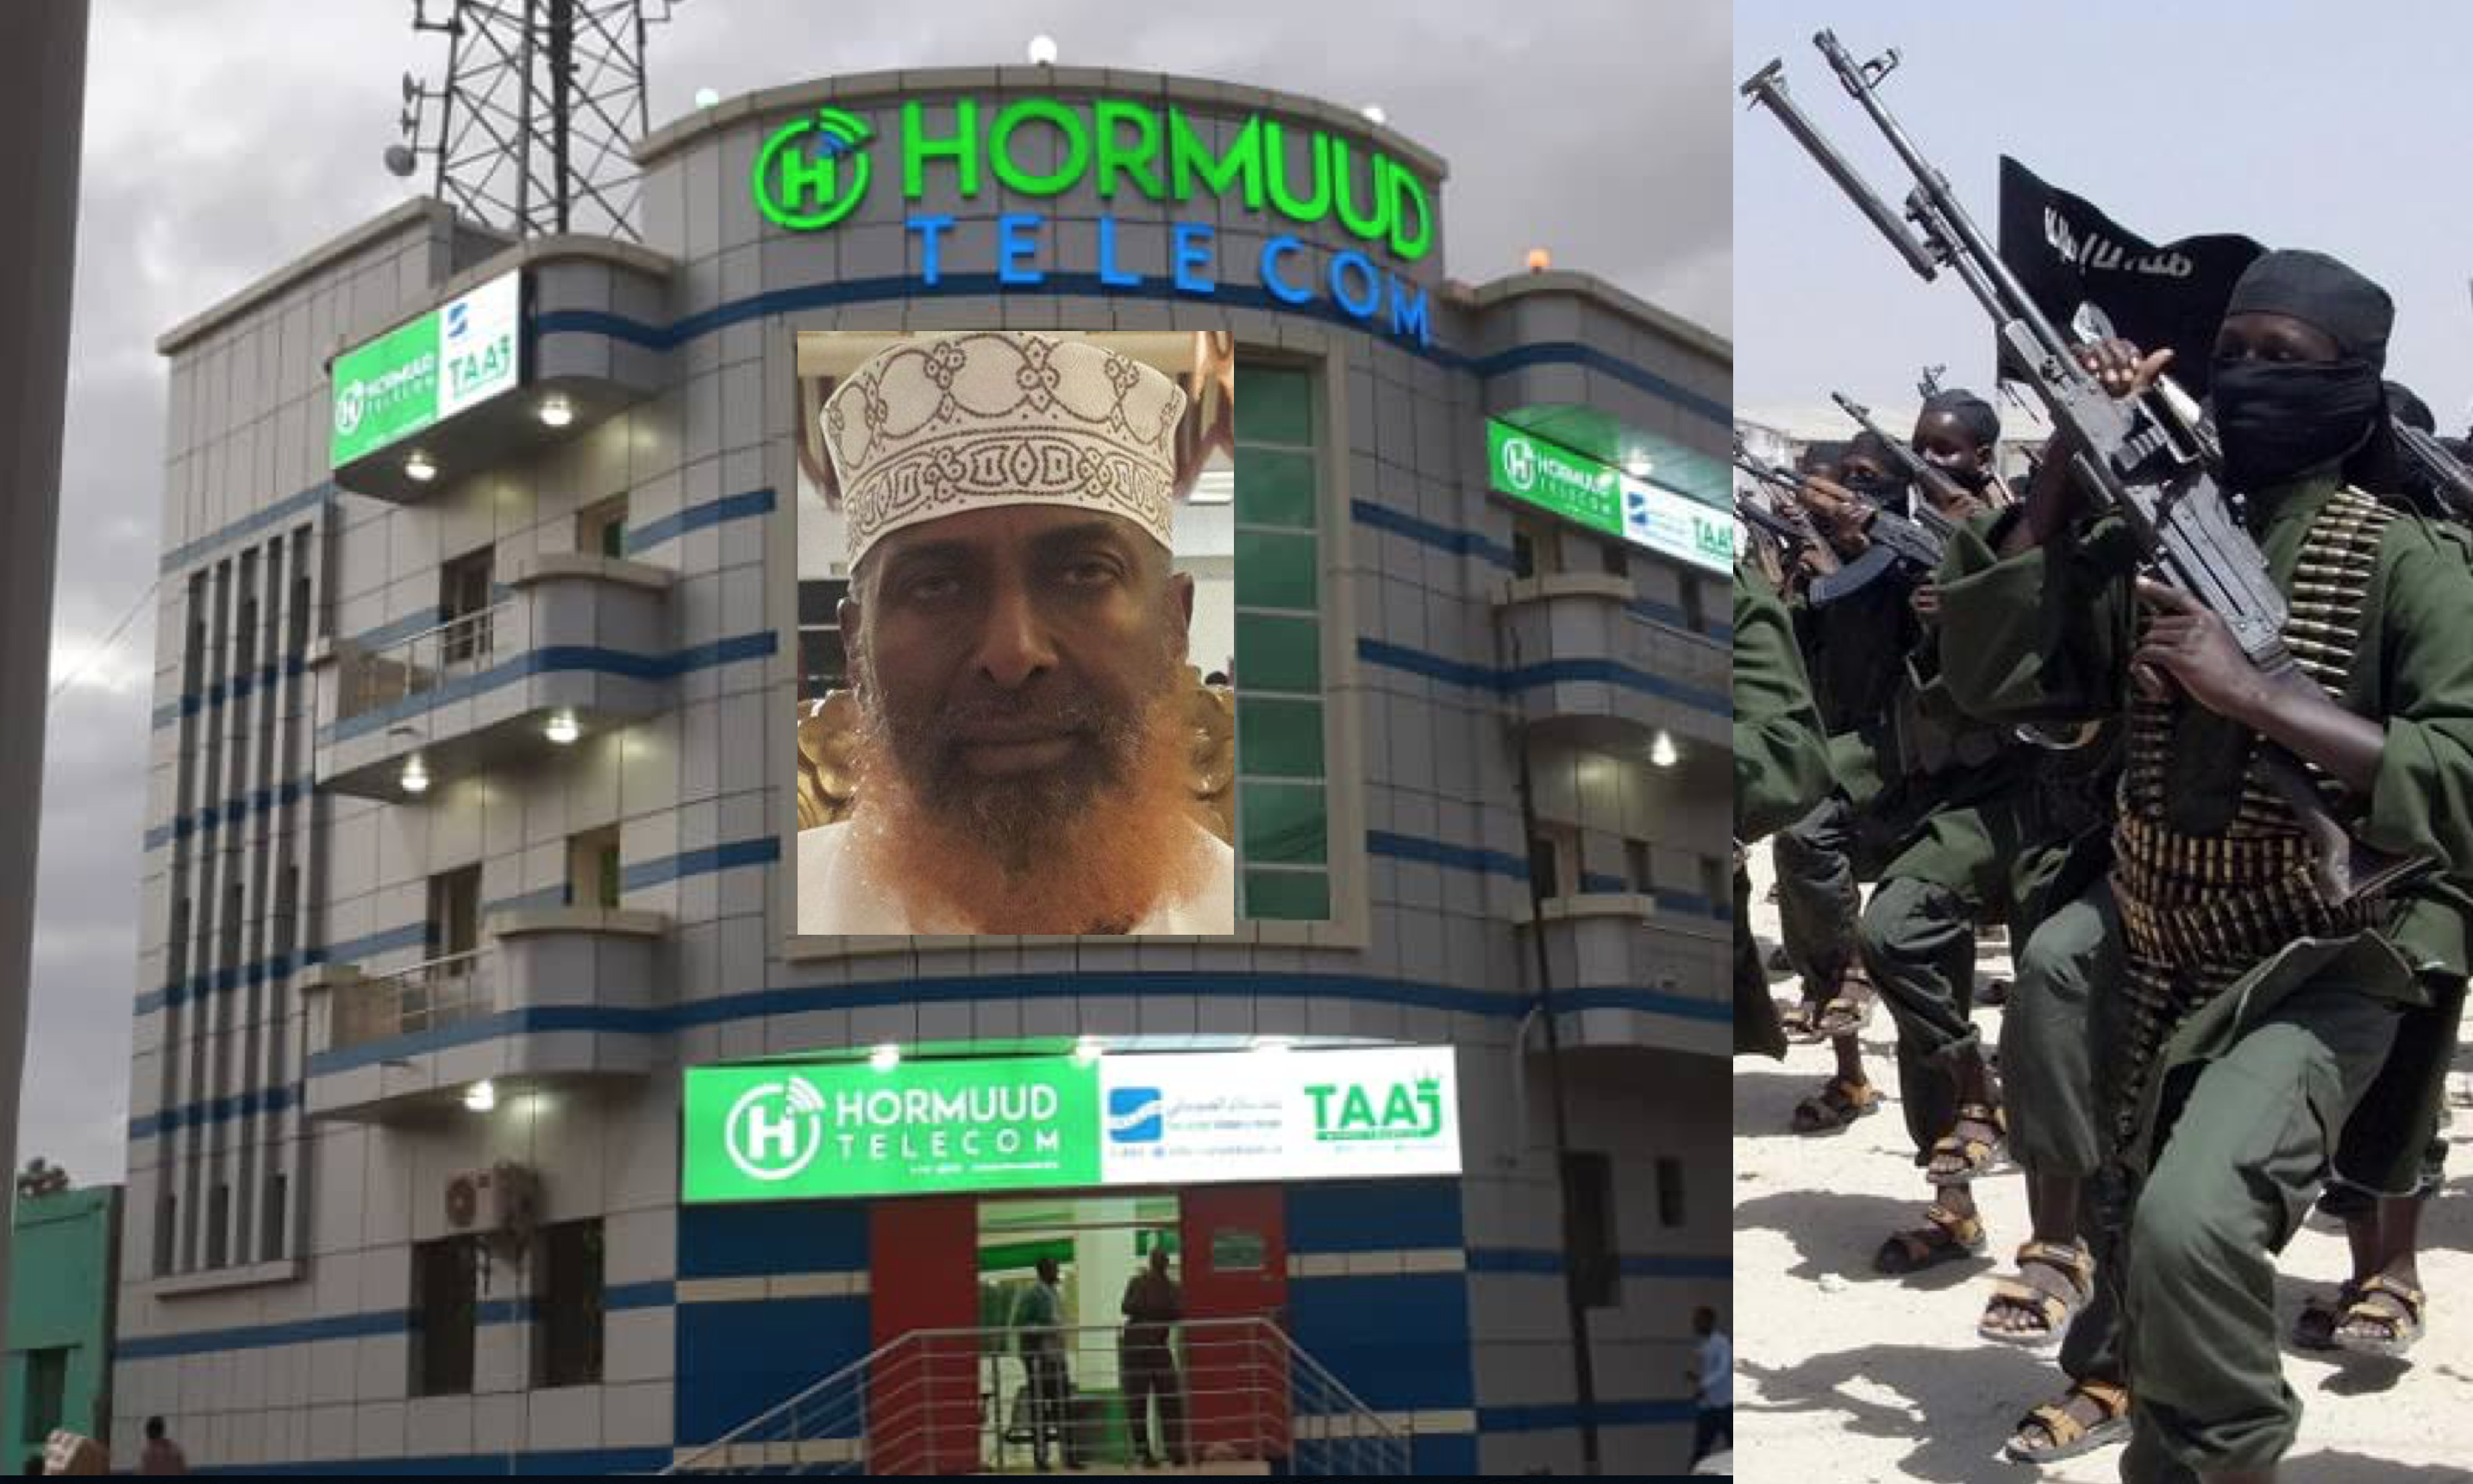 Somalia:Reaping the Whirlwind Hormuud Telecom Entrepreneurs and the Resurgence of Al-Shabaab